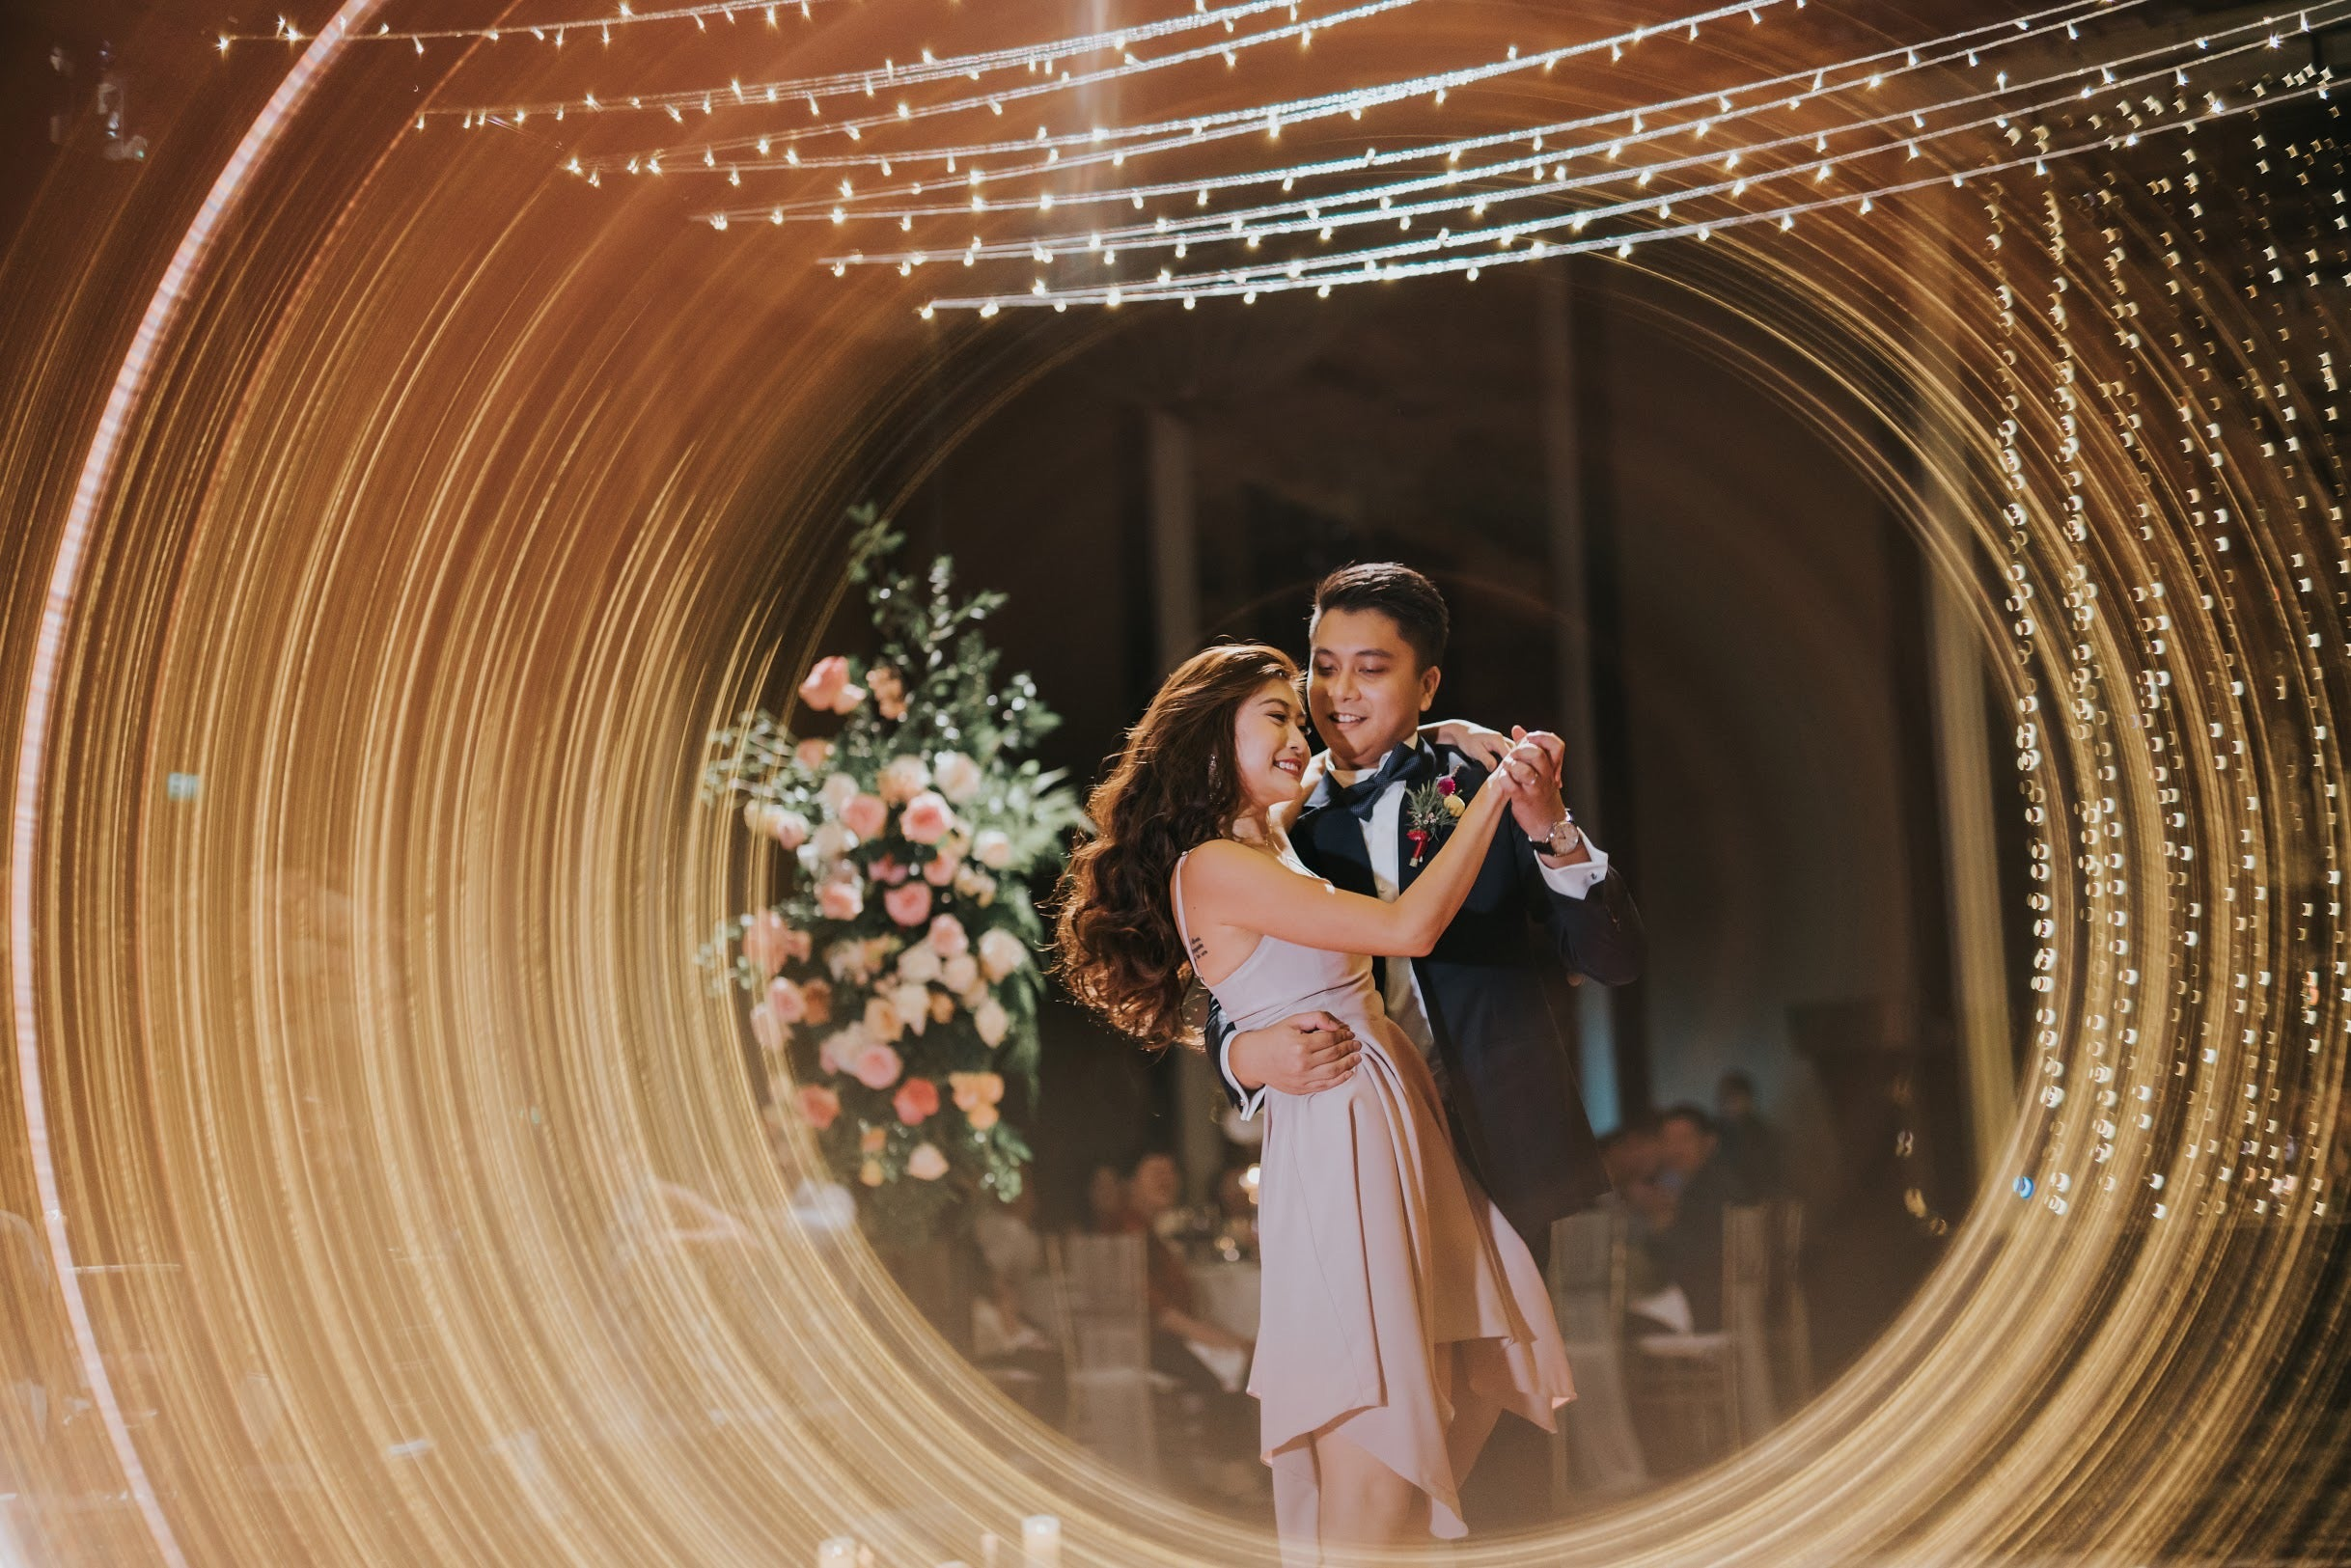 Unique light exposure photoshoot for first dance at a wedding hosted at The St. Regis Singapore